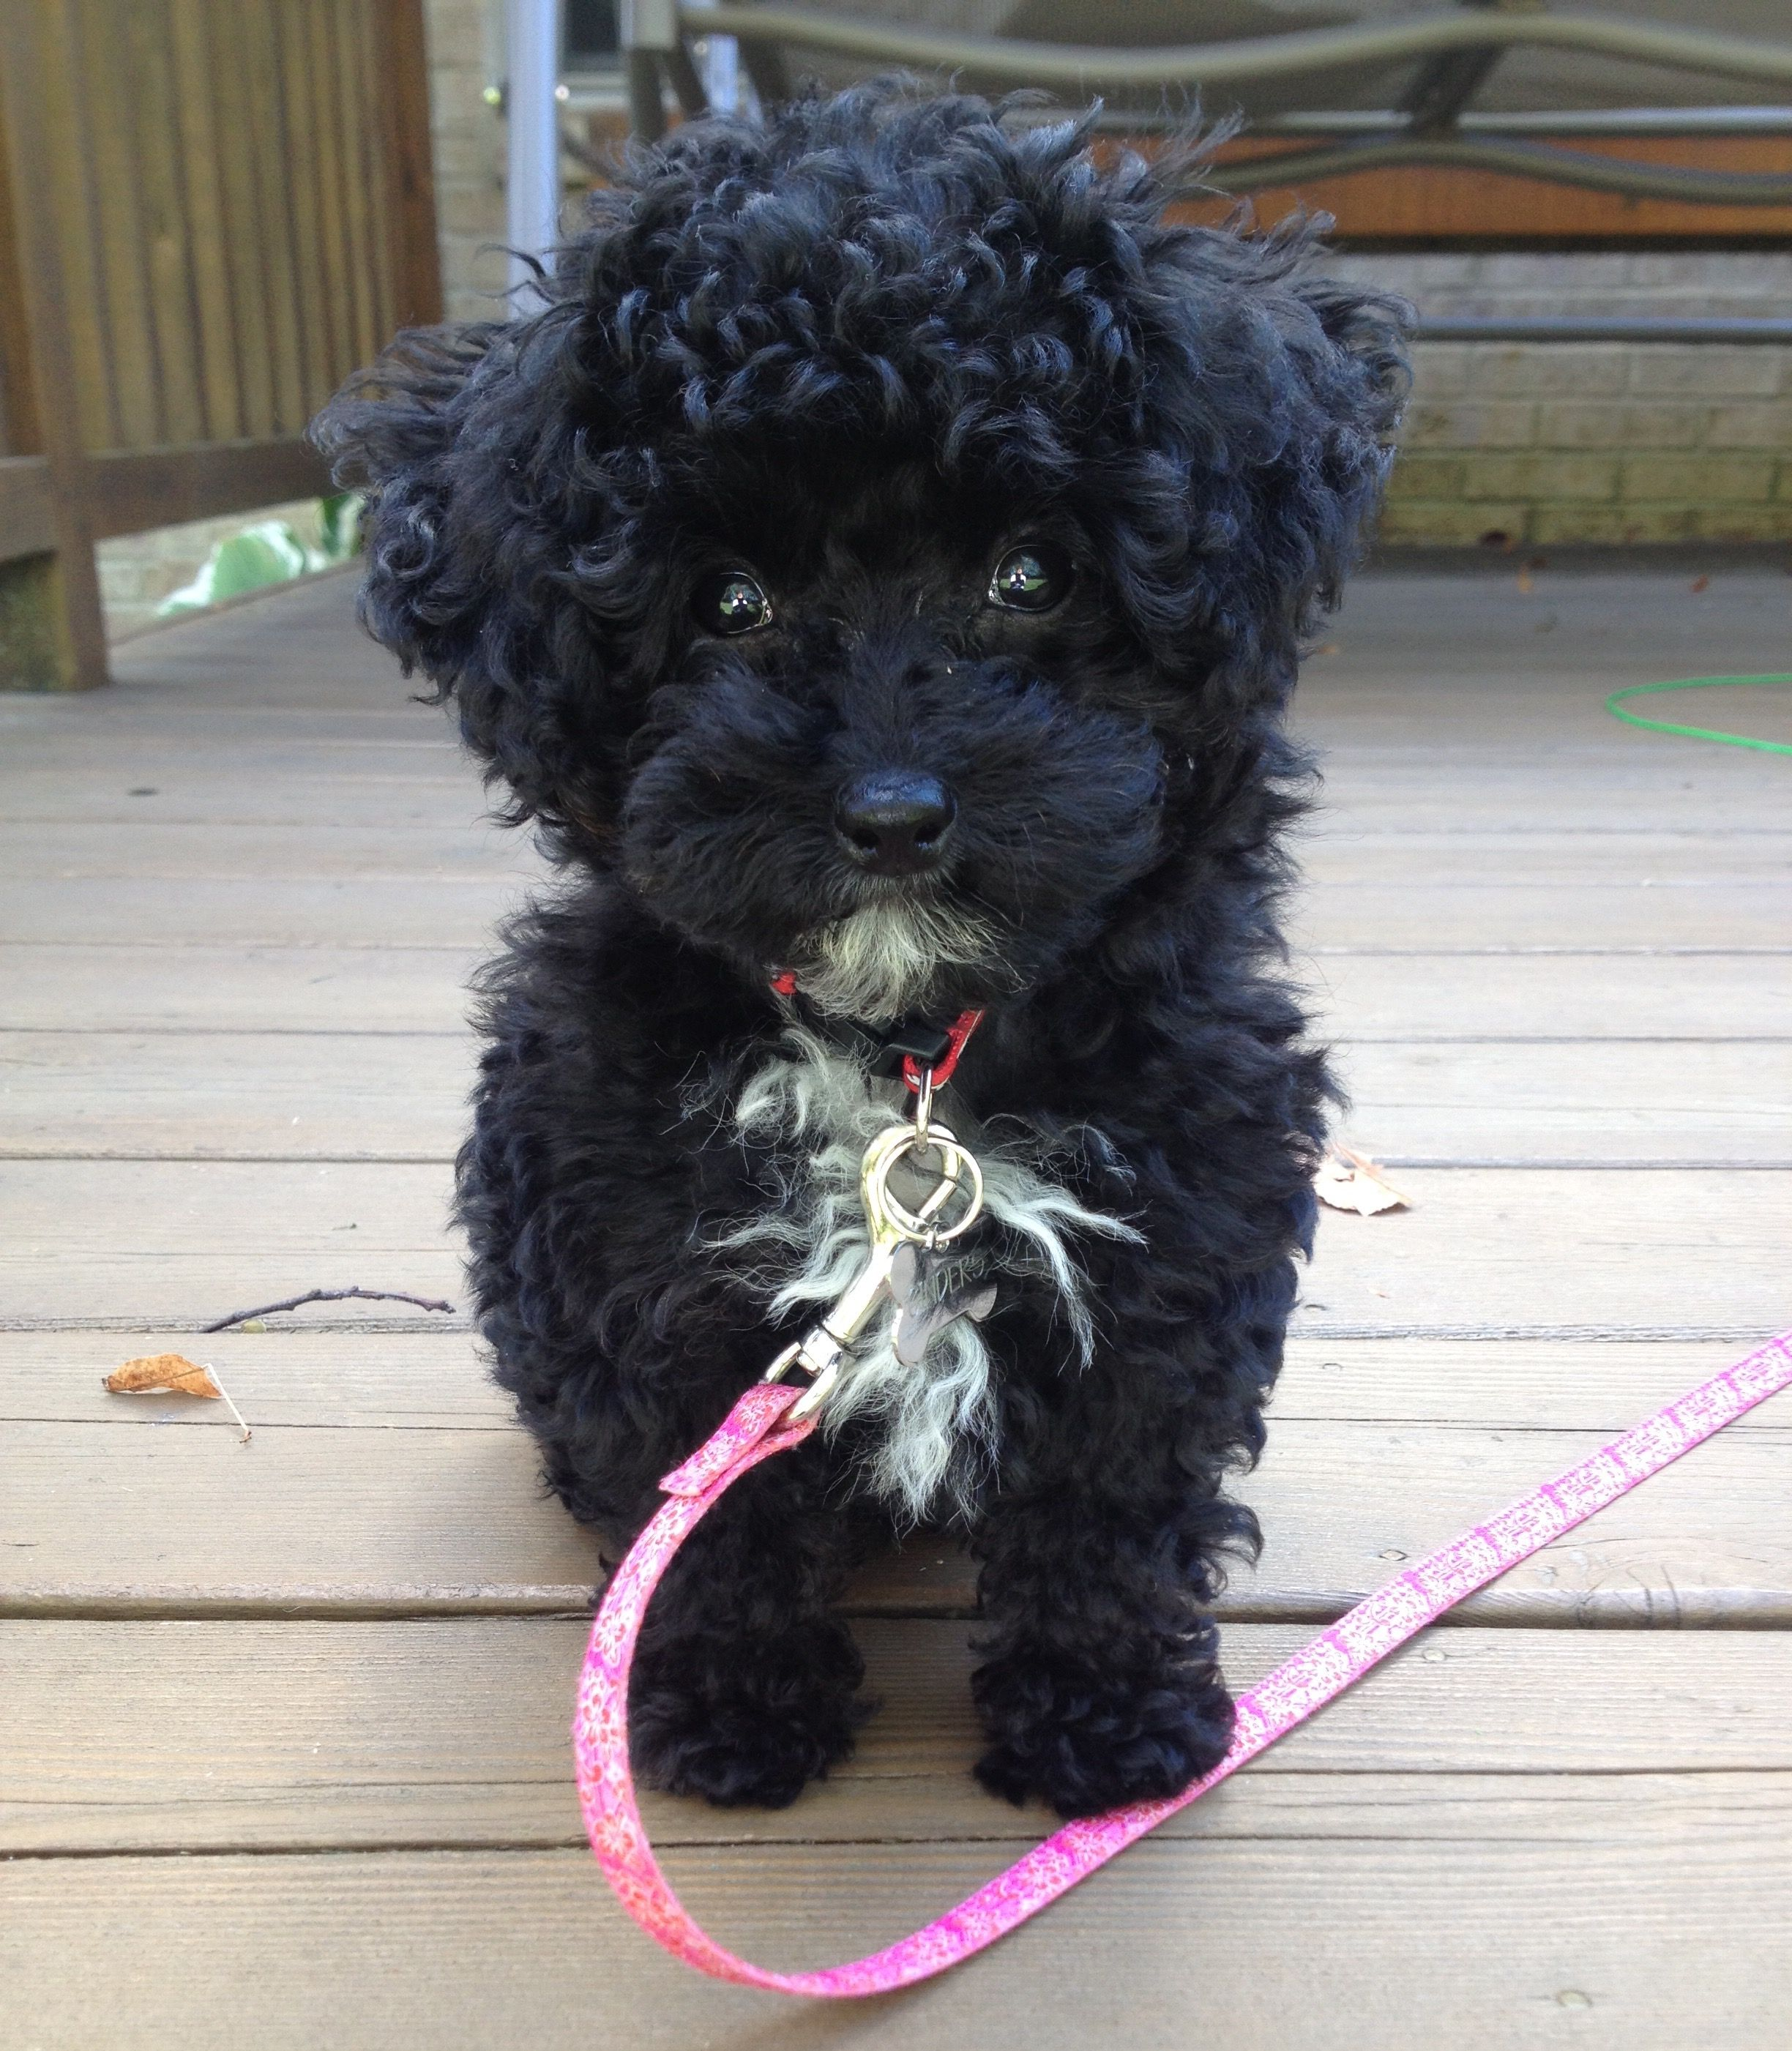 Pin By Joanne Proia On Cute Dogs Poodle Puppy Poodle Dogs